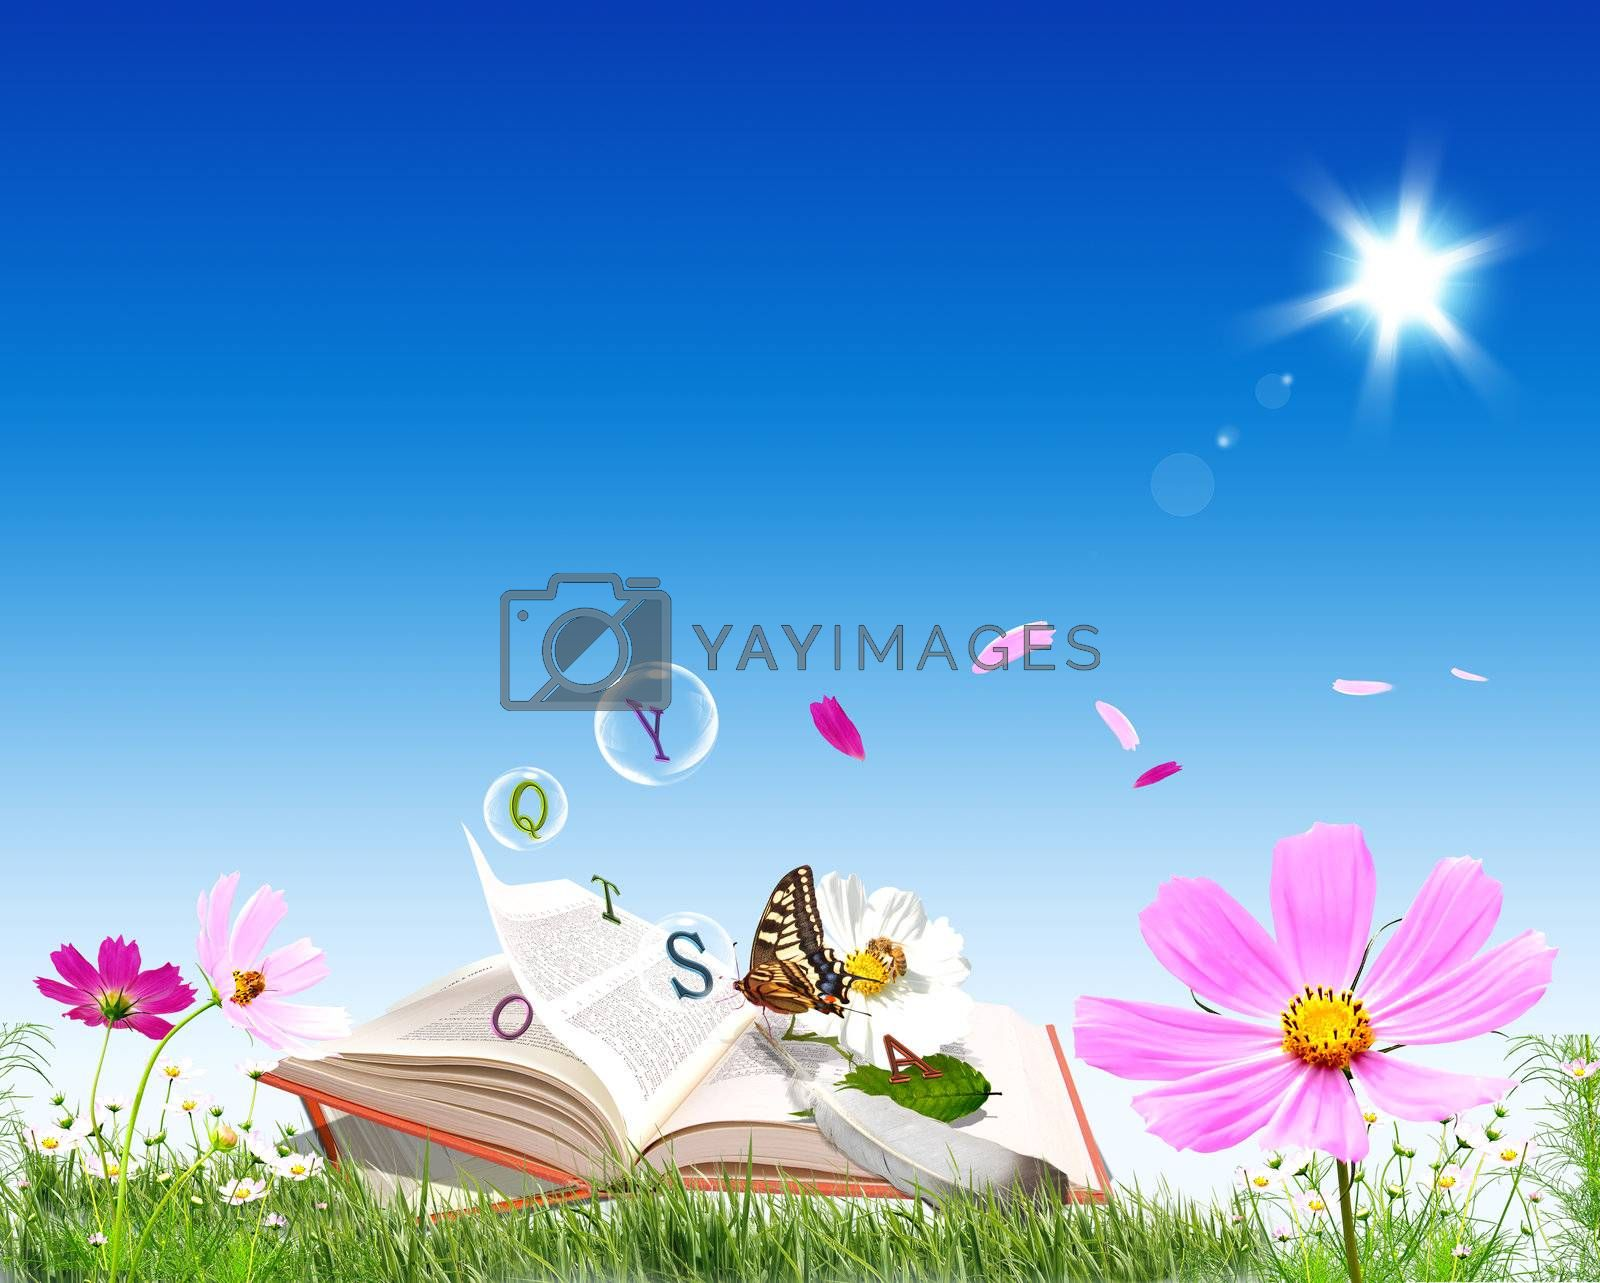 It is nice summer book with blue sky shining sun flowers